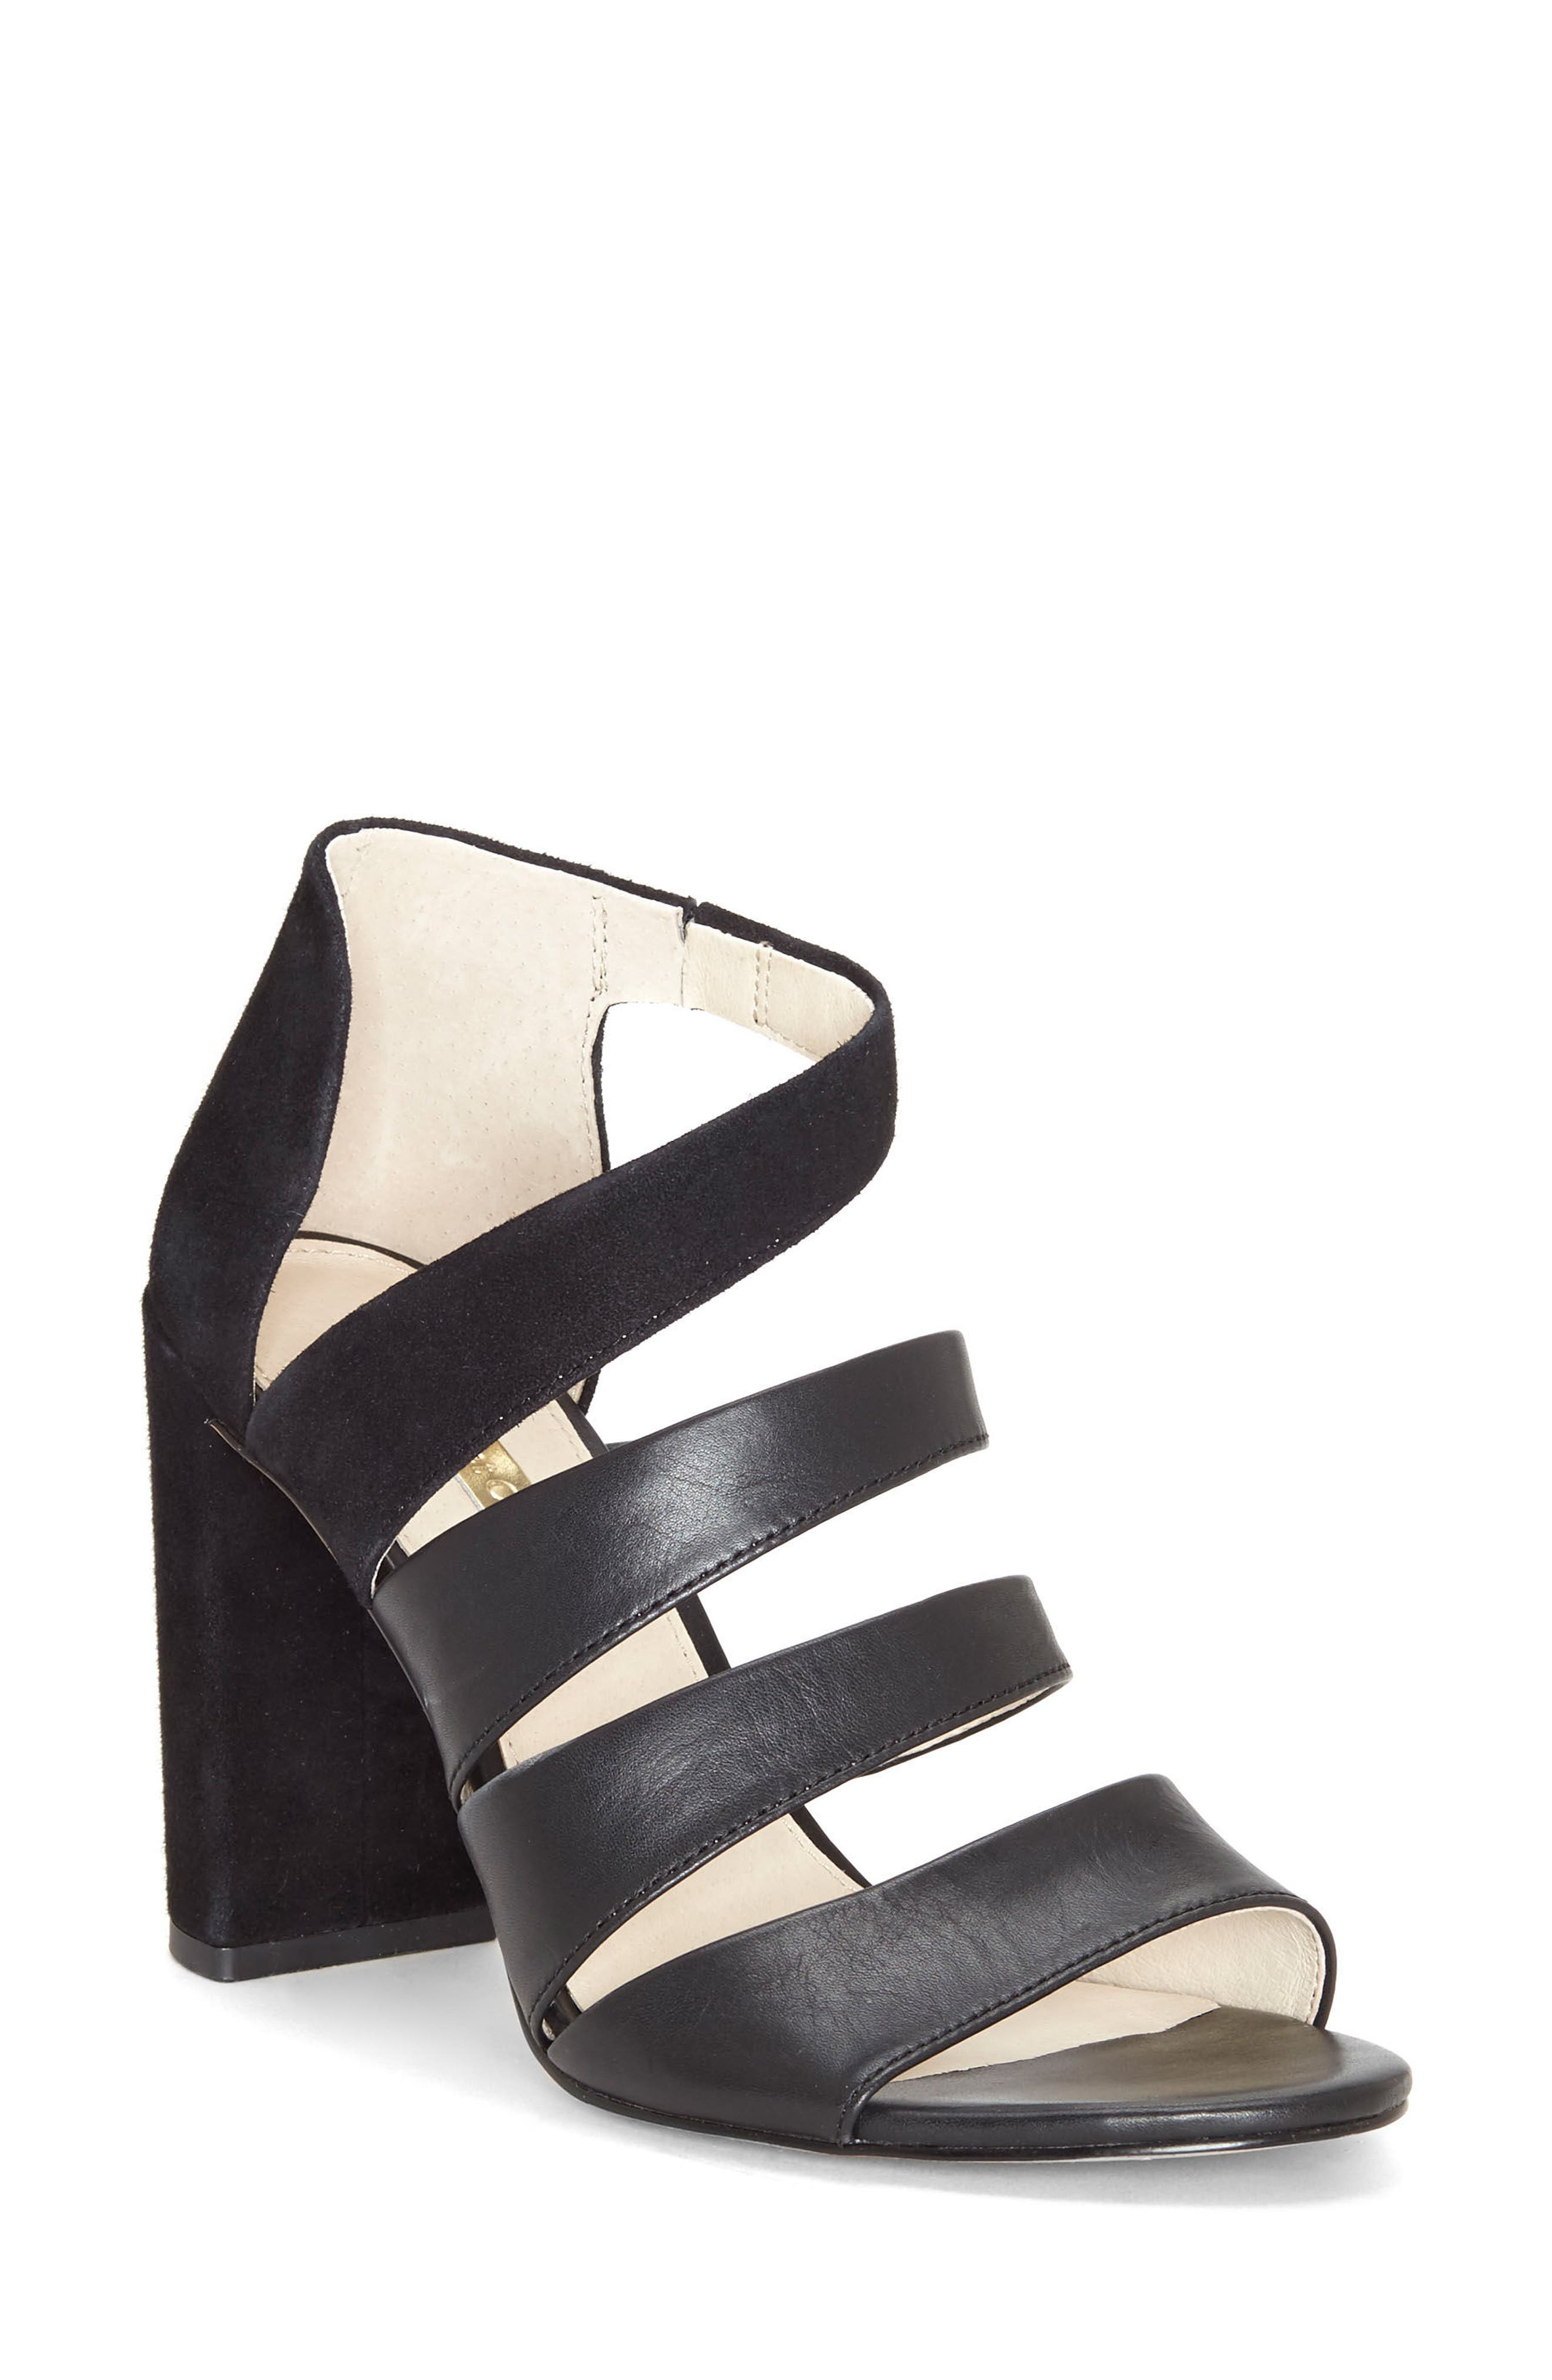 Kainey Strappy Sandal,                         Main,                         color, 002